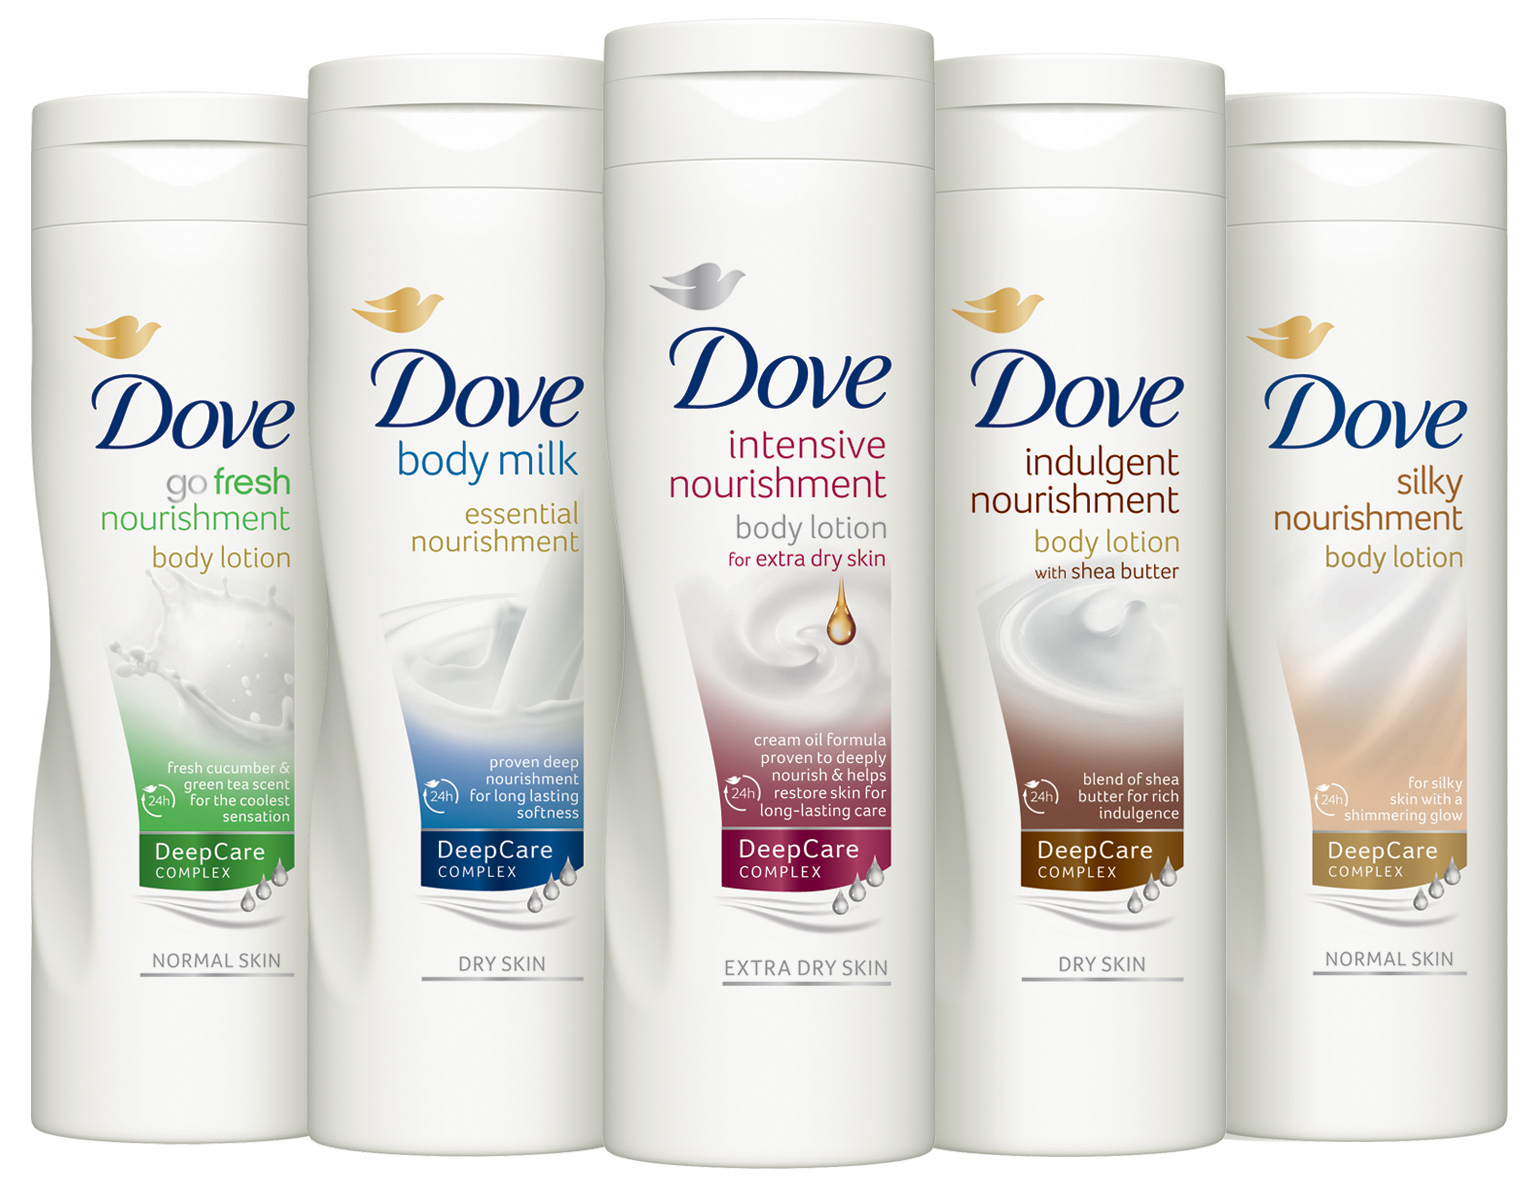 Right Hand Shower Bath Review Dove Body Lotions Beauty By Eljammi